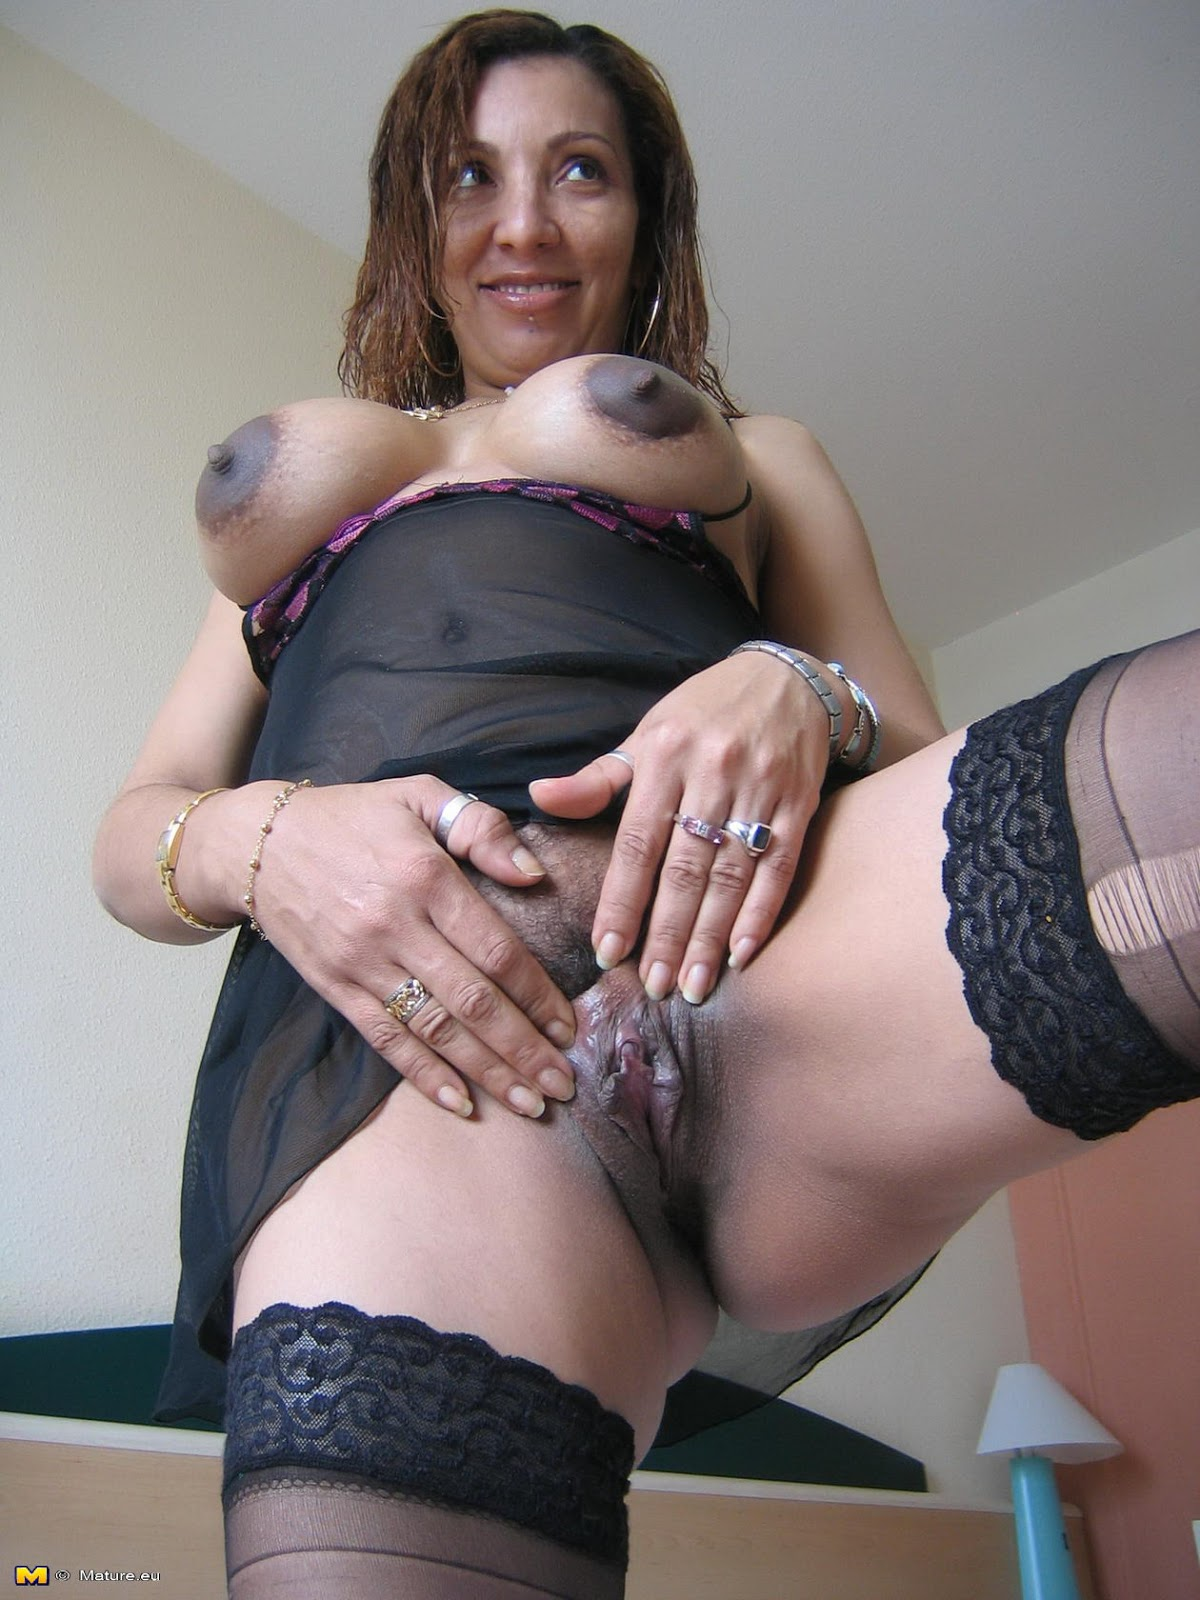 Tits are latina mature naked woman